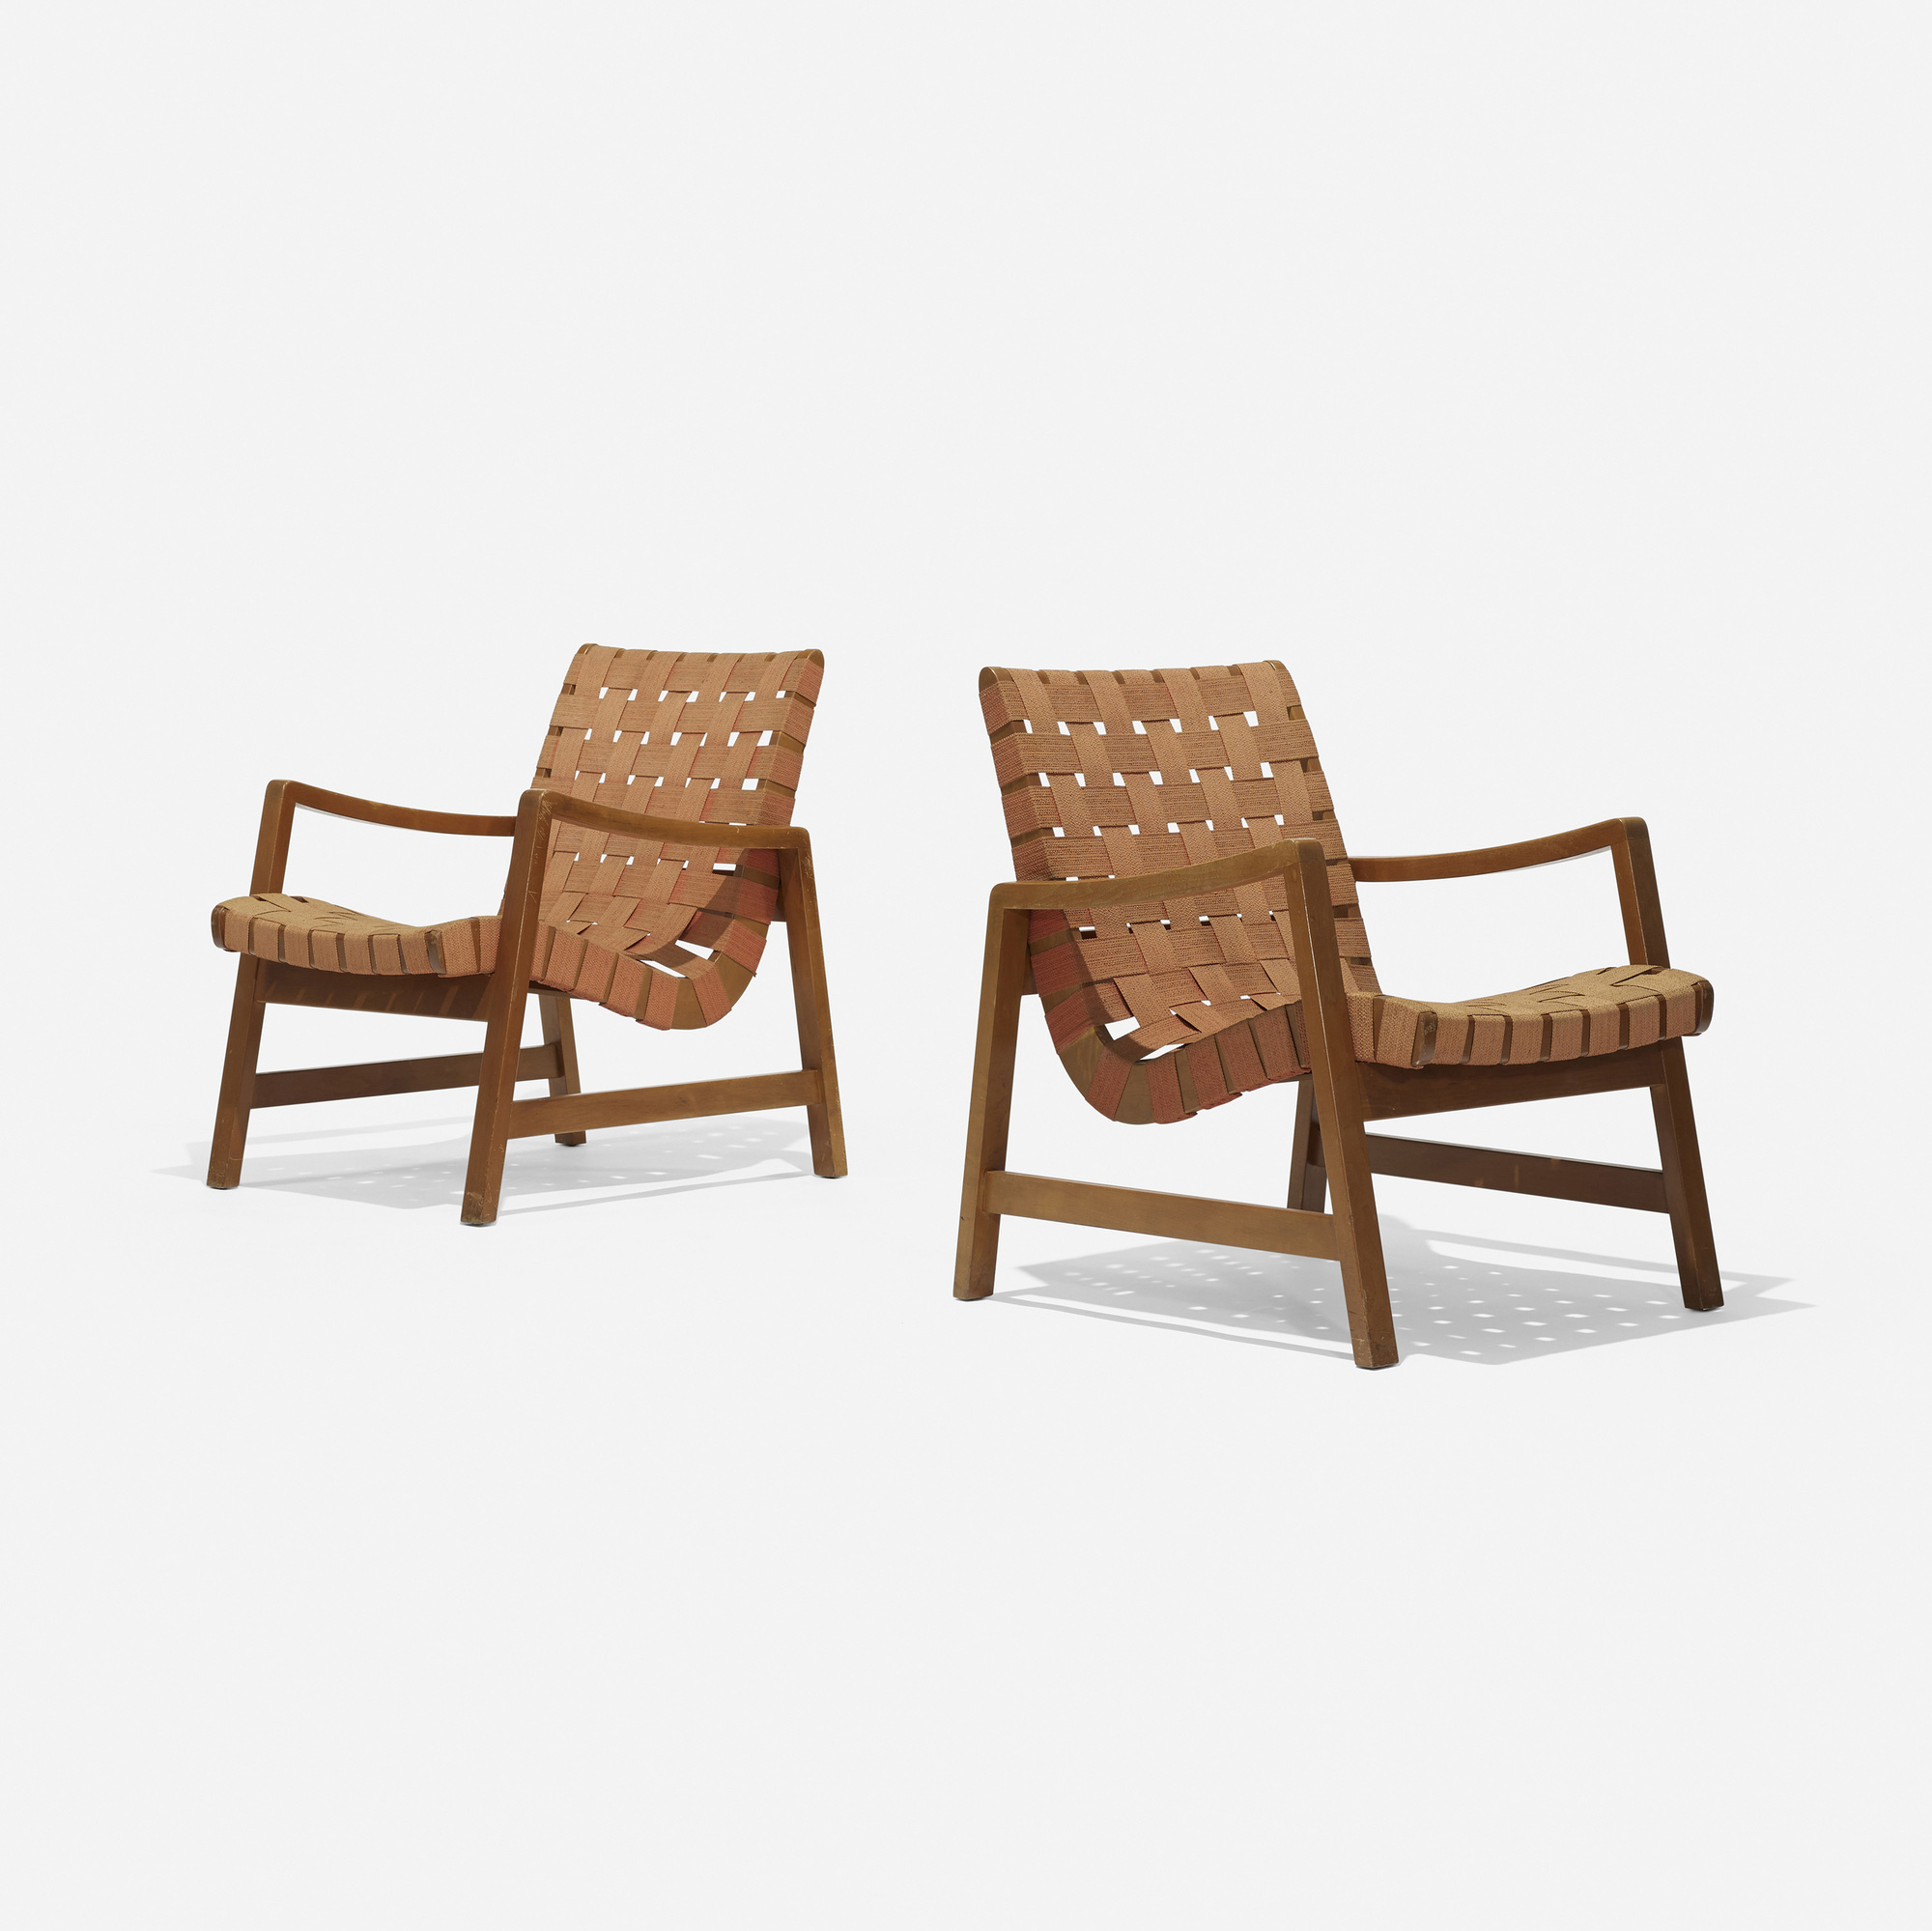 151: Jens Risom / Lounge Chairs Model 652 W, Pair (1 Of 4